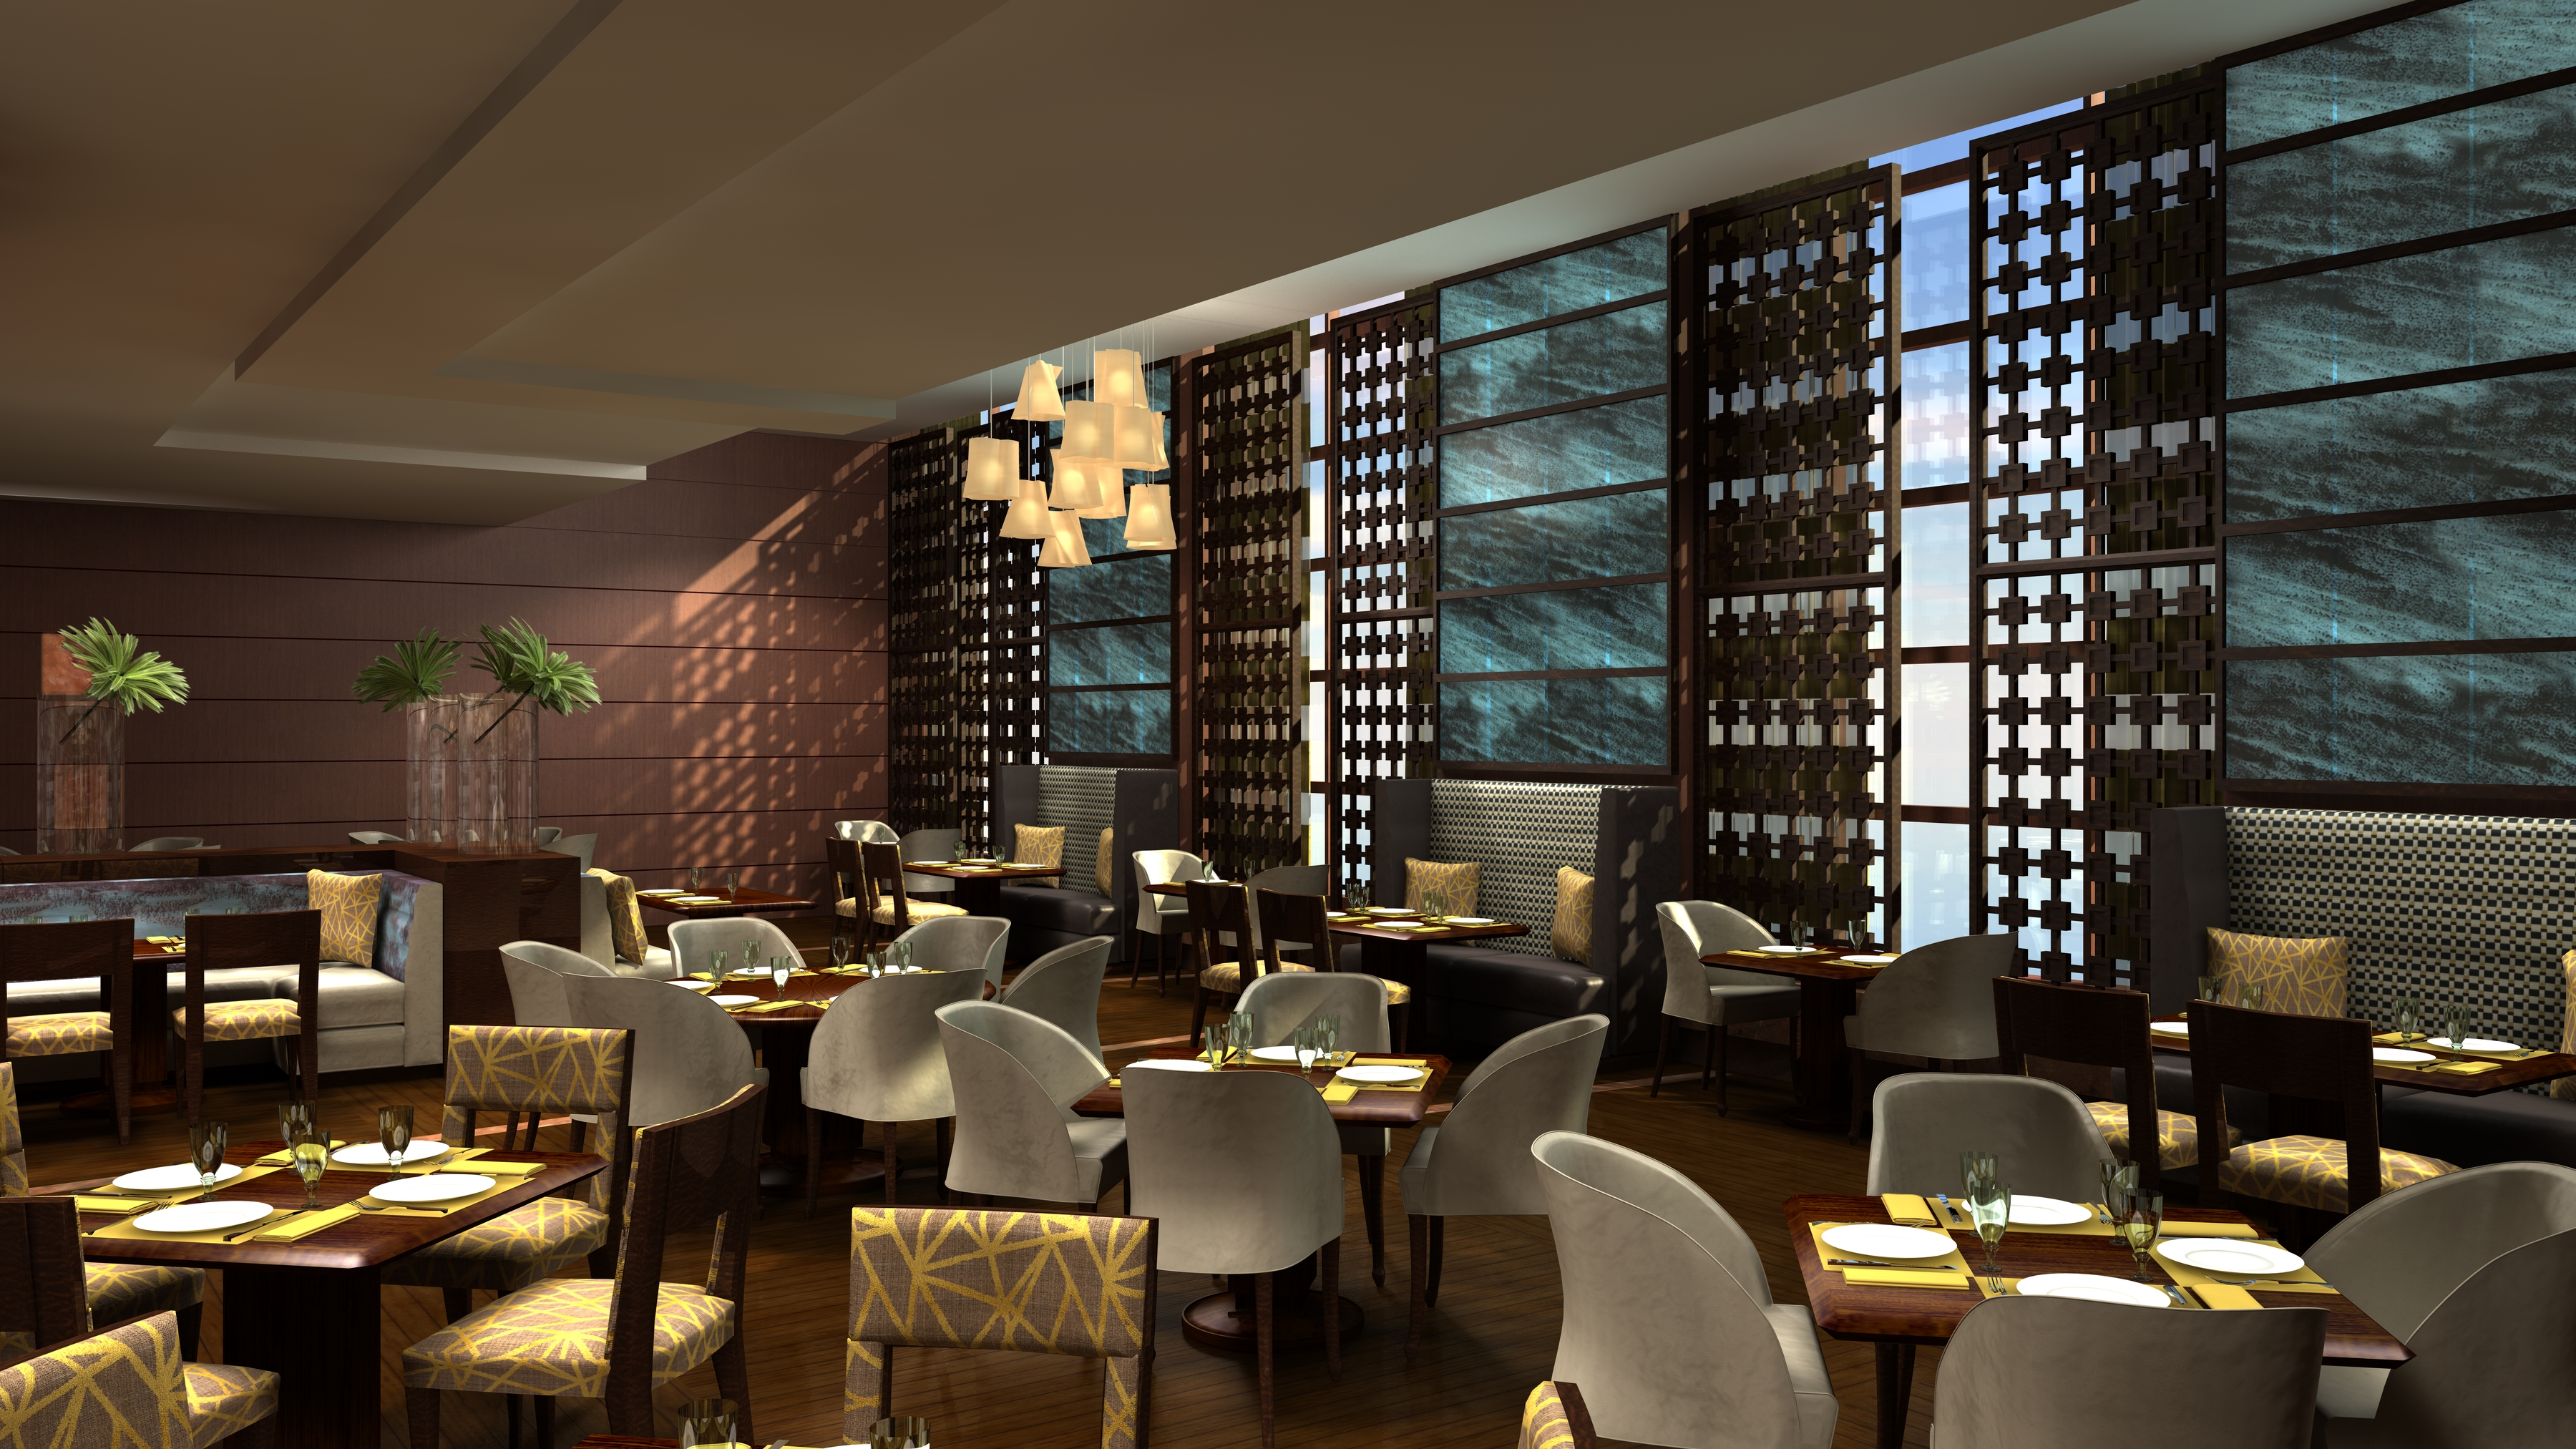 Make Your Customers Feel Good And Comfortable By Having Stylish Restaurant Furnishing